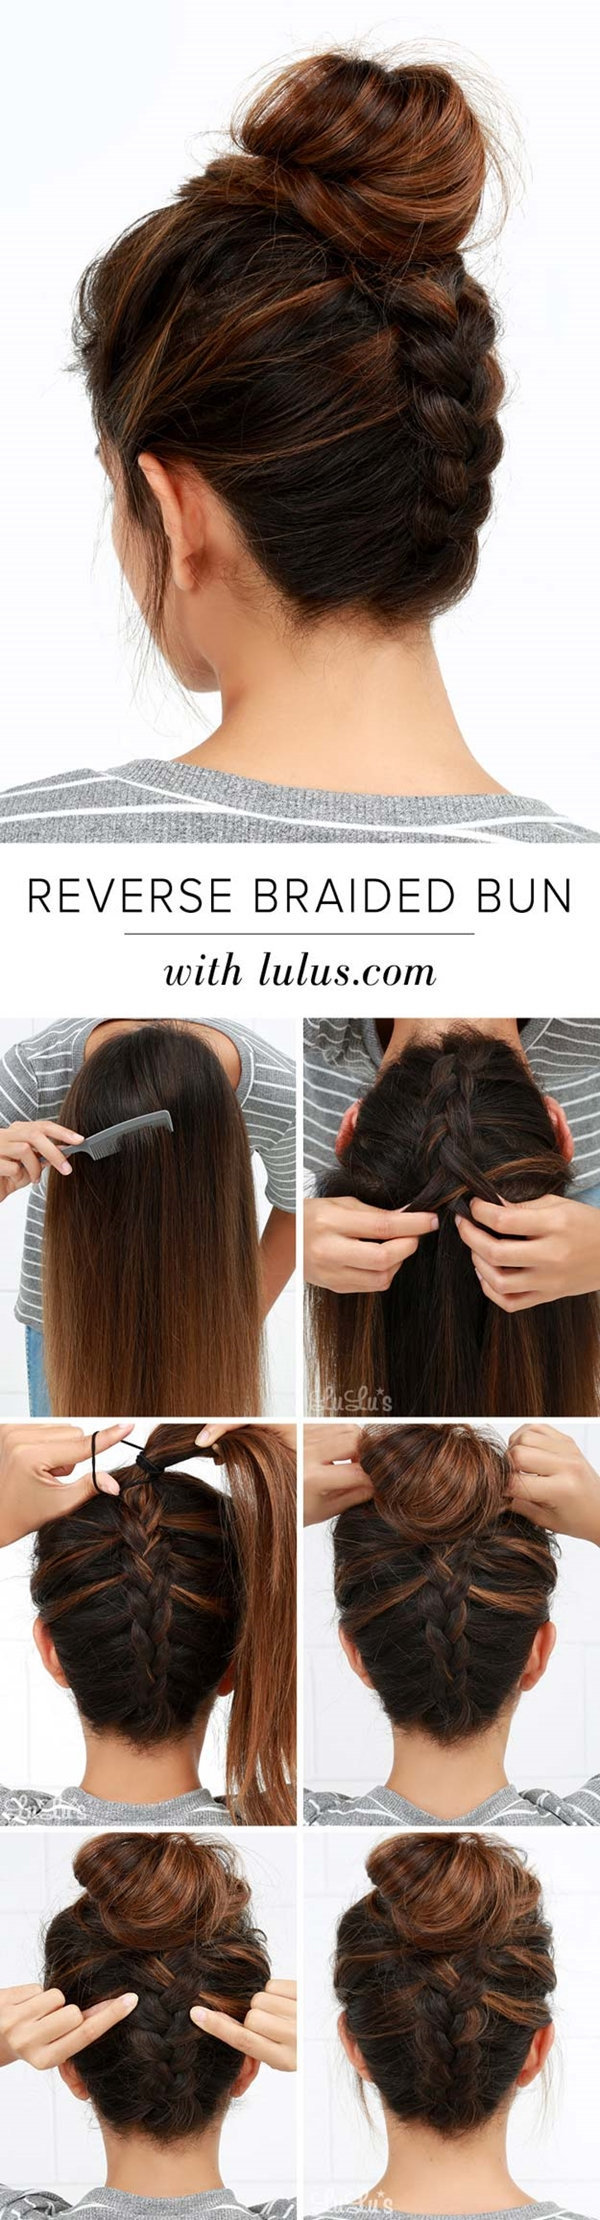 5 Examples of How to Make Bun Hairstyles (Step by Step ...